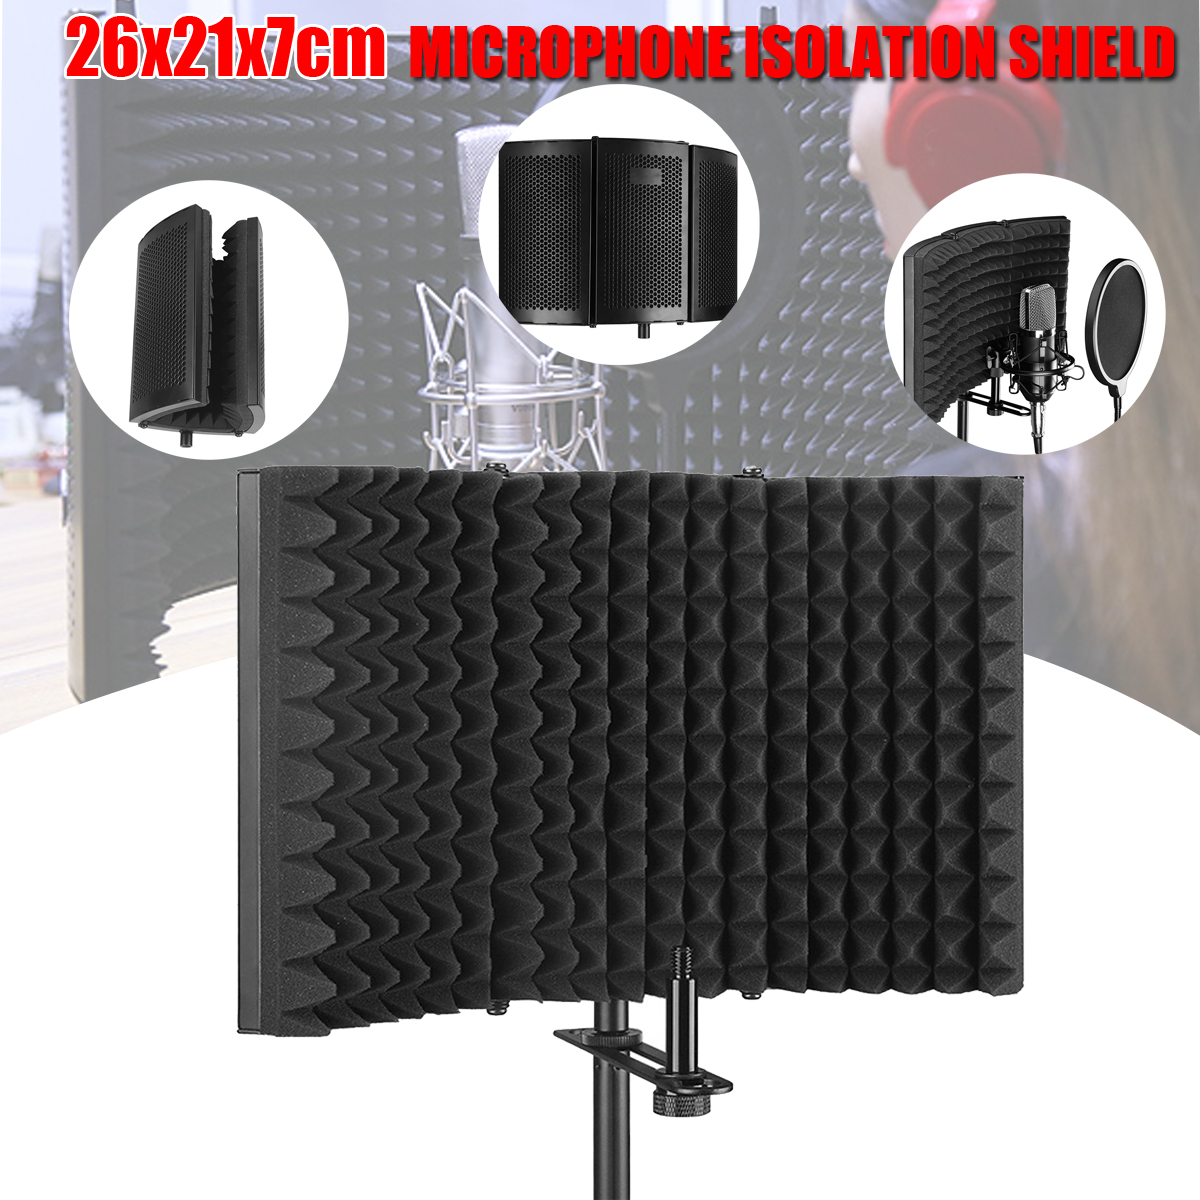 Foldable Microphone Acoustic Isolation Shield Acoustic EVA Foams Aluminum Isolator Panel for Recording Studio Live Broadcast acoustic metamaterials